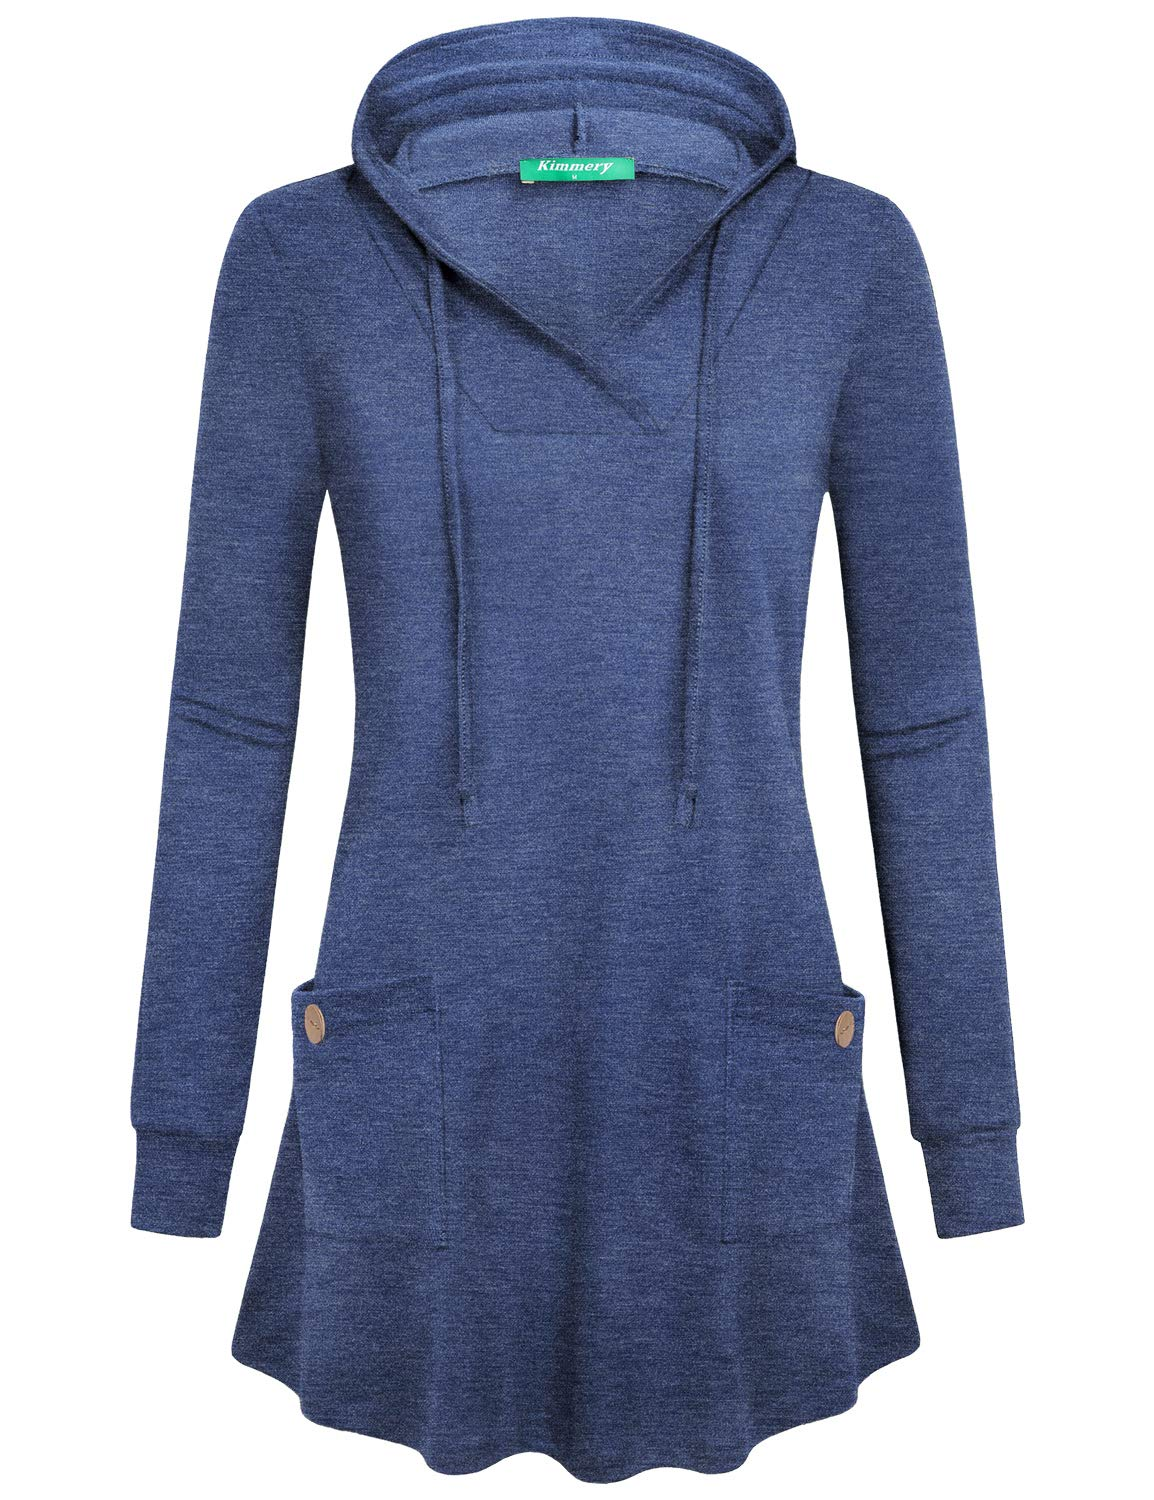 Kimmery Blue Hoodie for Women, Fit and Flare Sweatshirts Long Sleeve V Neck Pockets Pullover Button Detail Tunic for Juniors Solid Color Outwear Fashion for Winter Outdoor Travel Shopping X Large